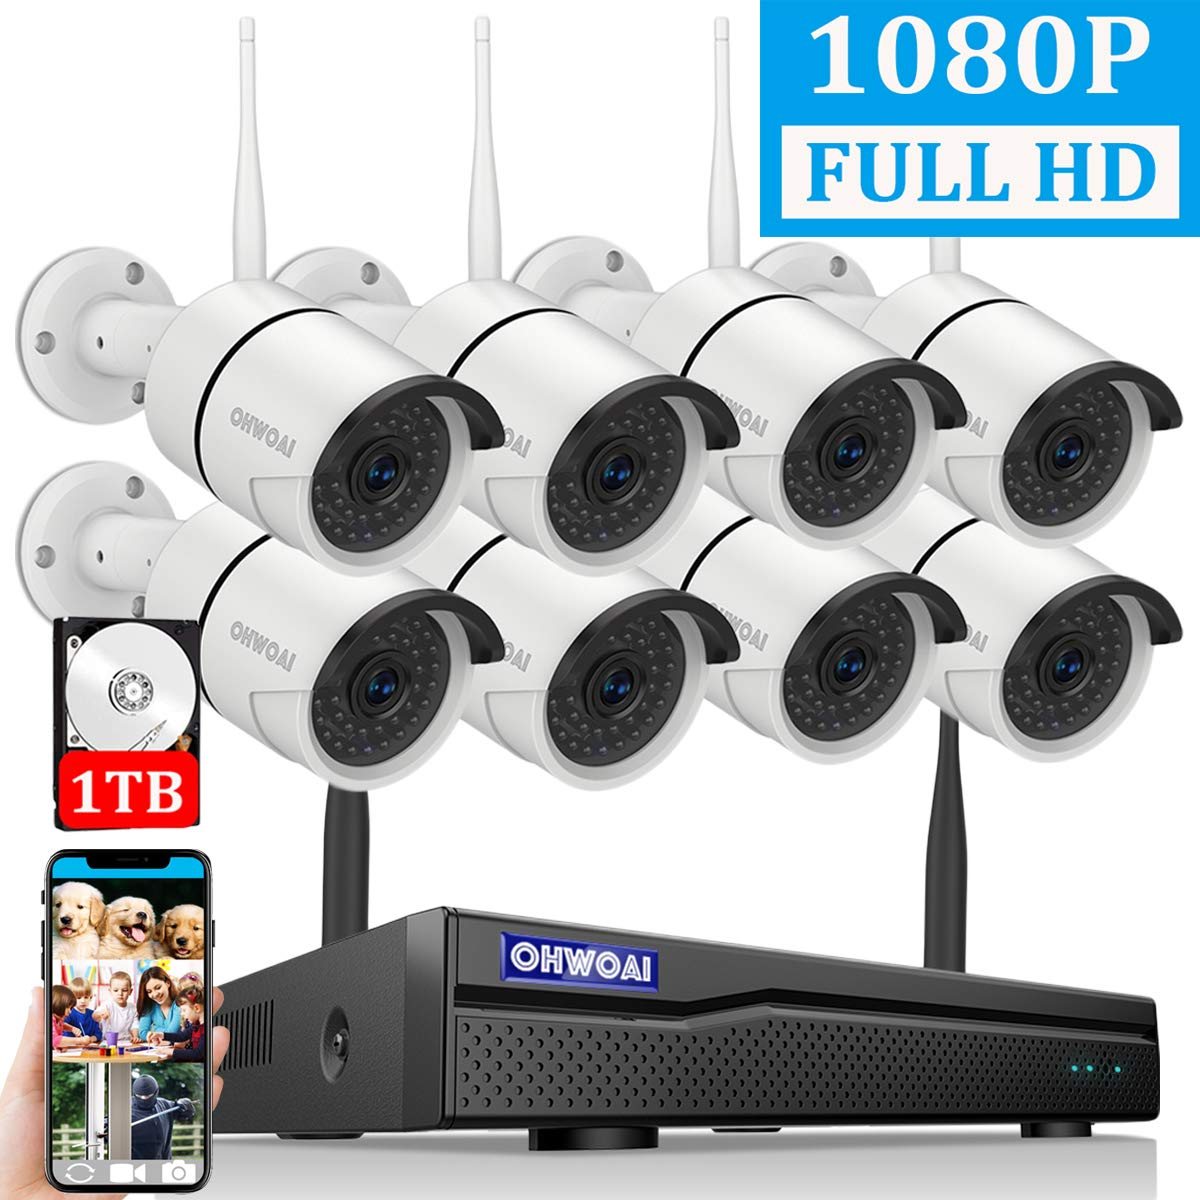 【2019 New】 Security Camera System Wireless Outdoor, 8 Channel 1080P NVR with 1TB Hard Drive, 8PCS 1080P CCTV Cameras for Homes,OHWOAI HD Surveillance Video Security System,Outdoor Wireless IP Cameras